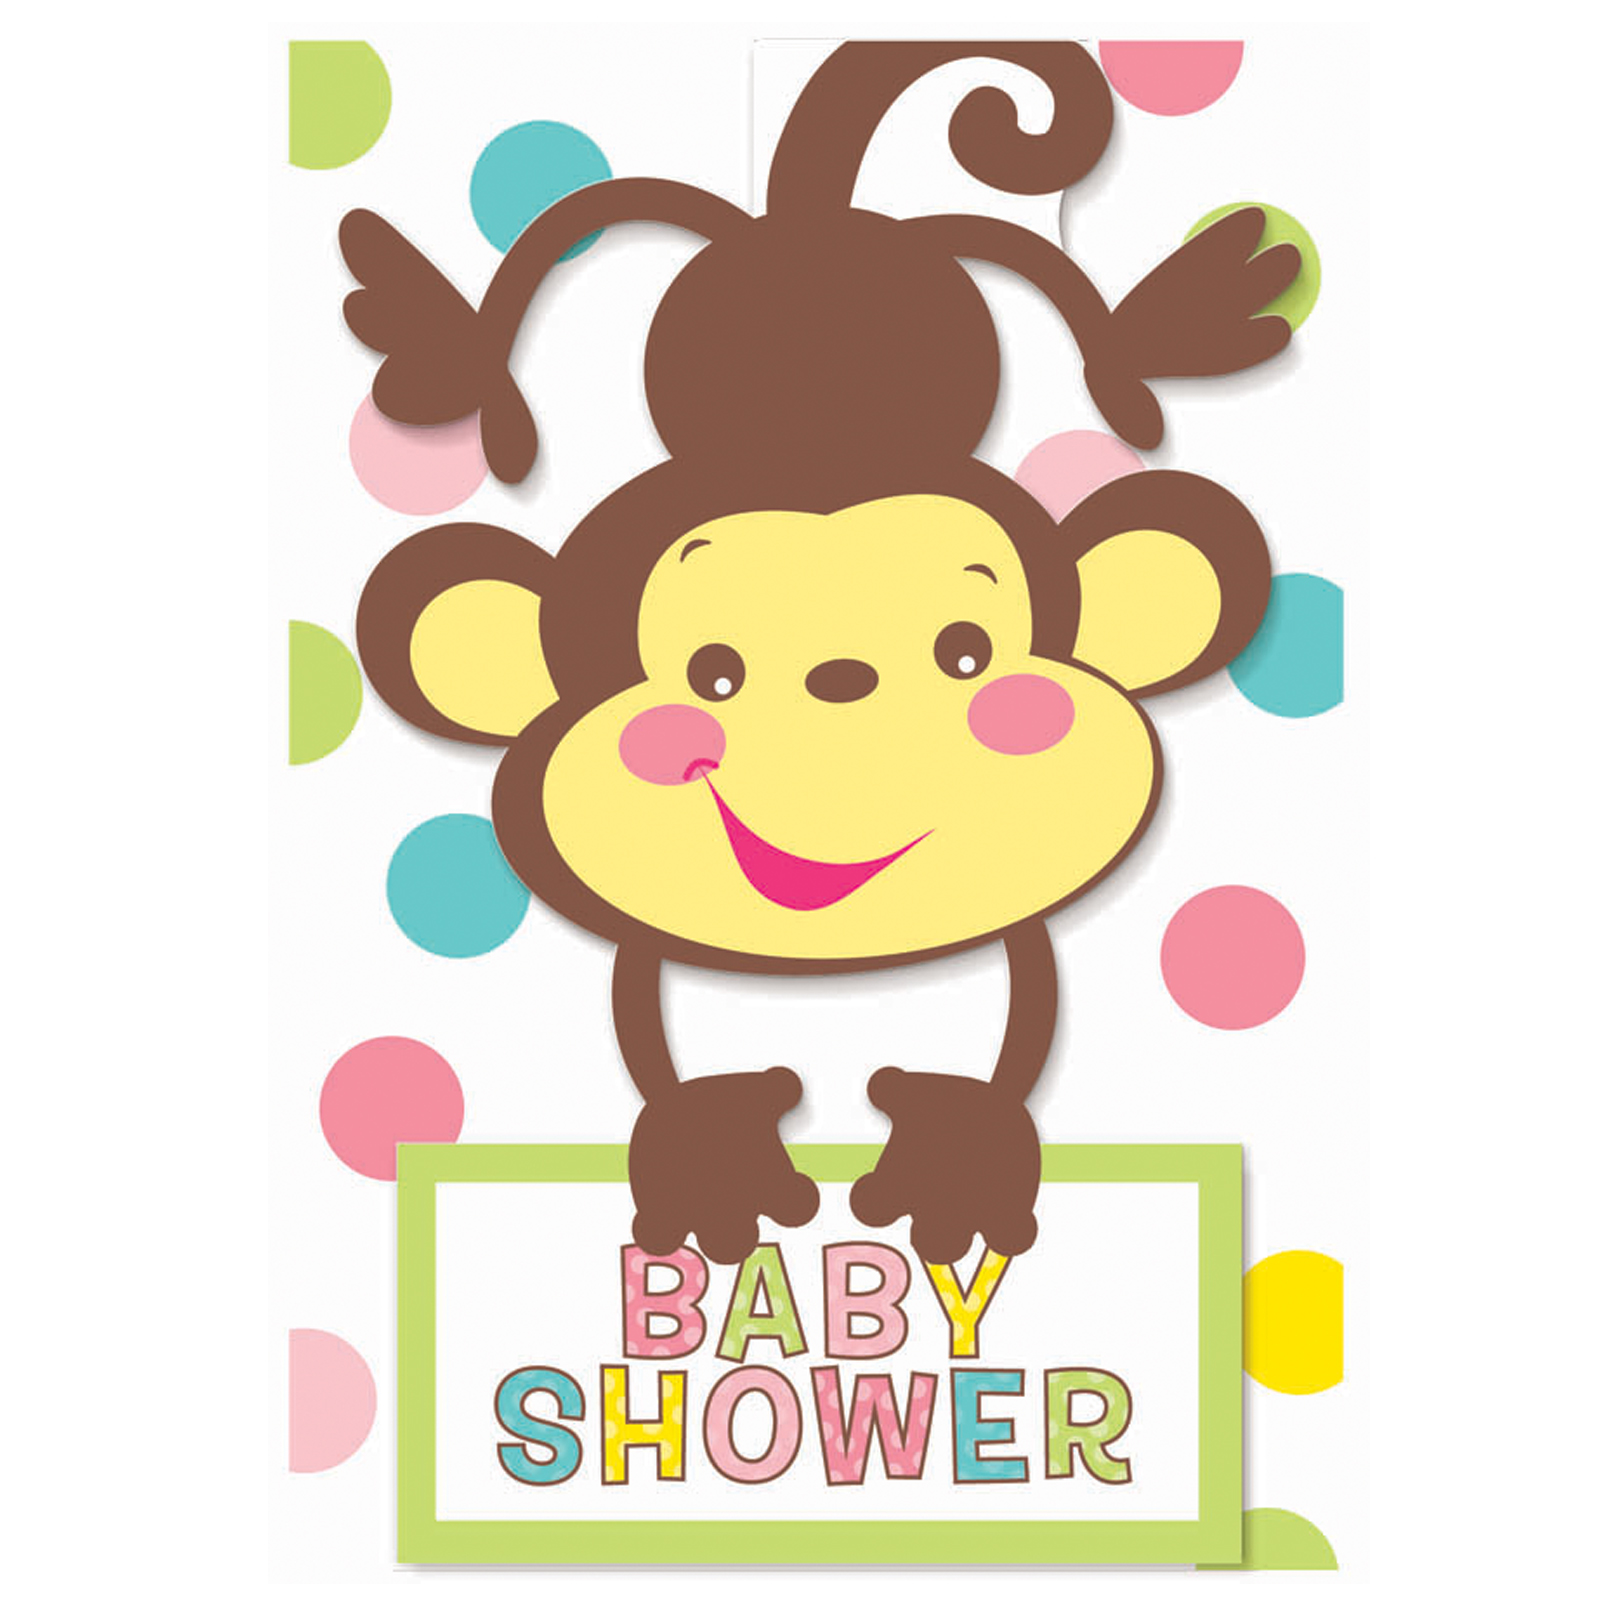 FisherPrice Baby Shower Invitations 1600 x 1600